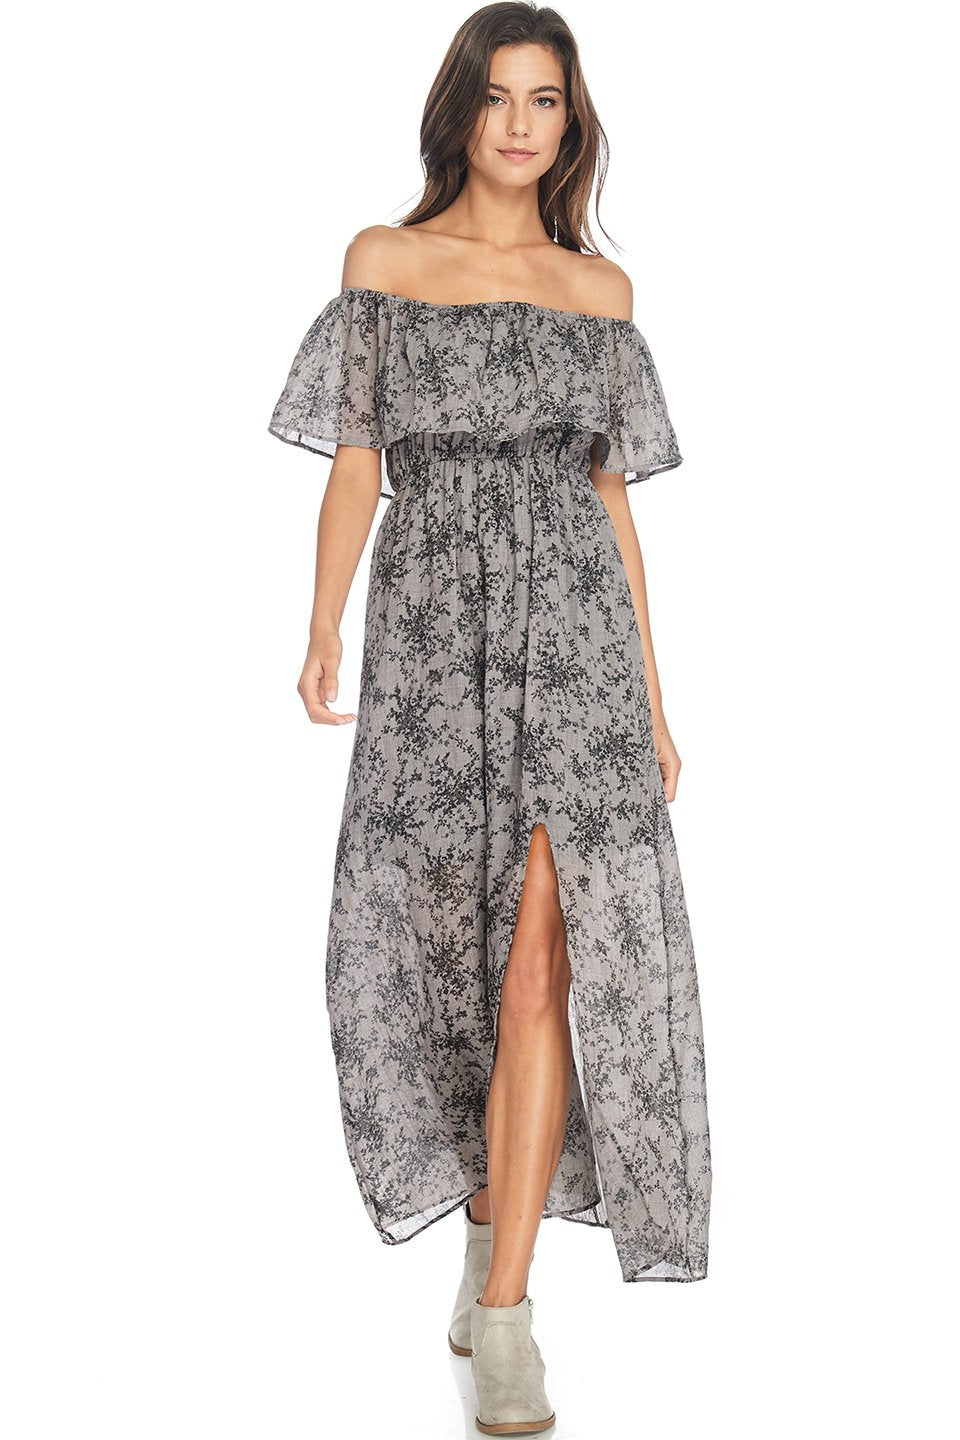 S18-265 Off The Shoulder Floral Maxi Dress